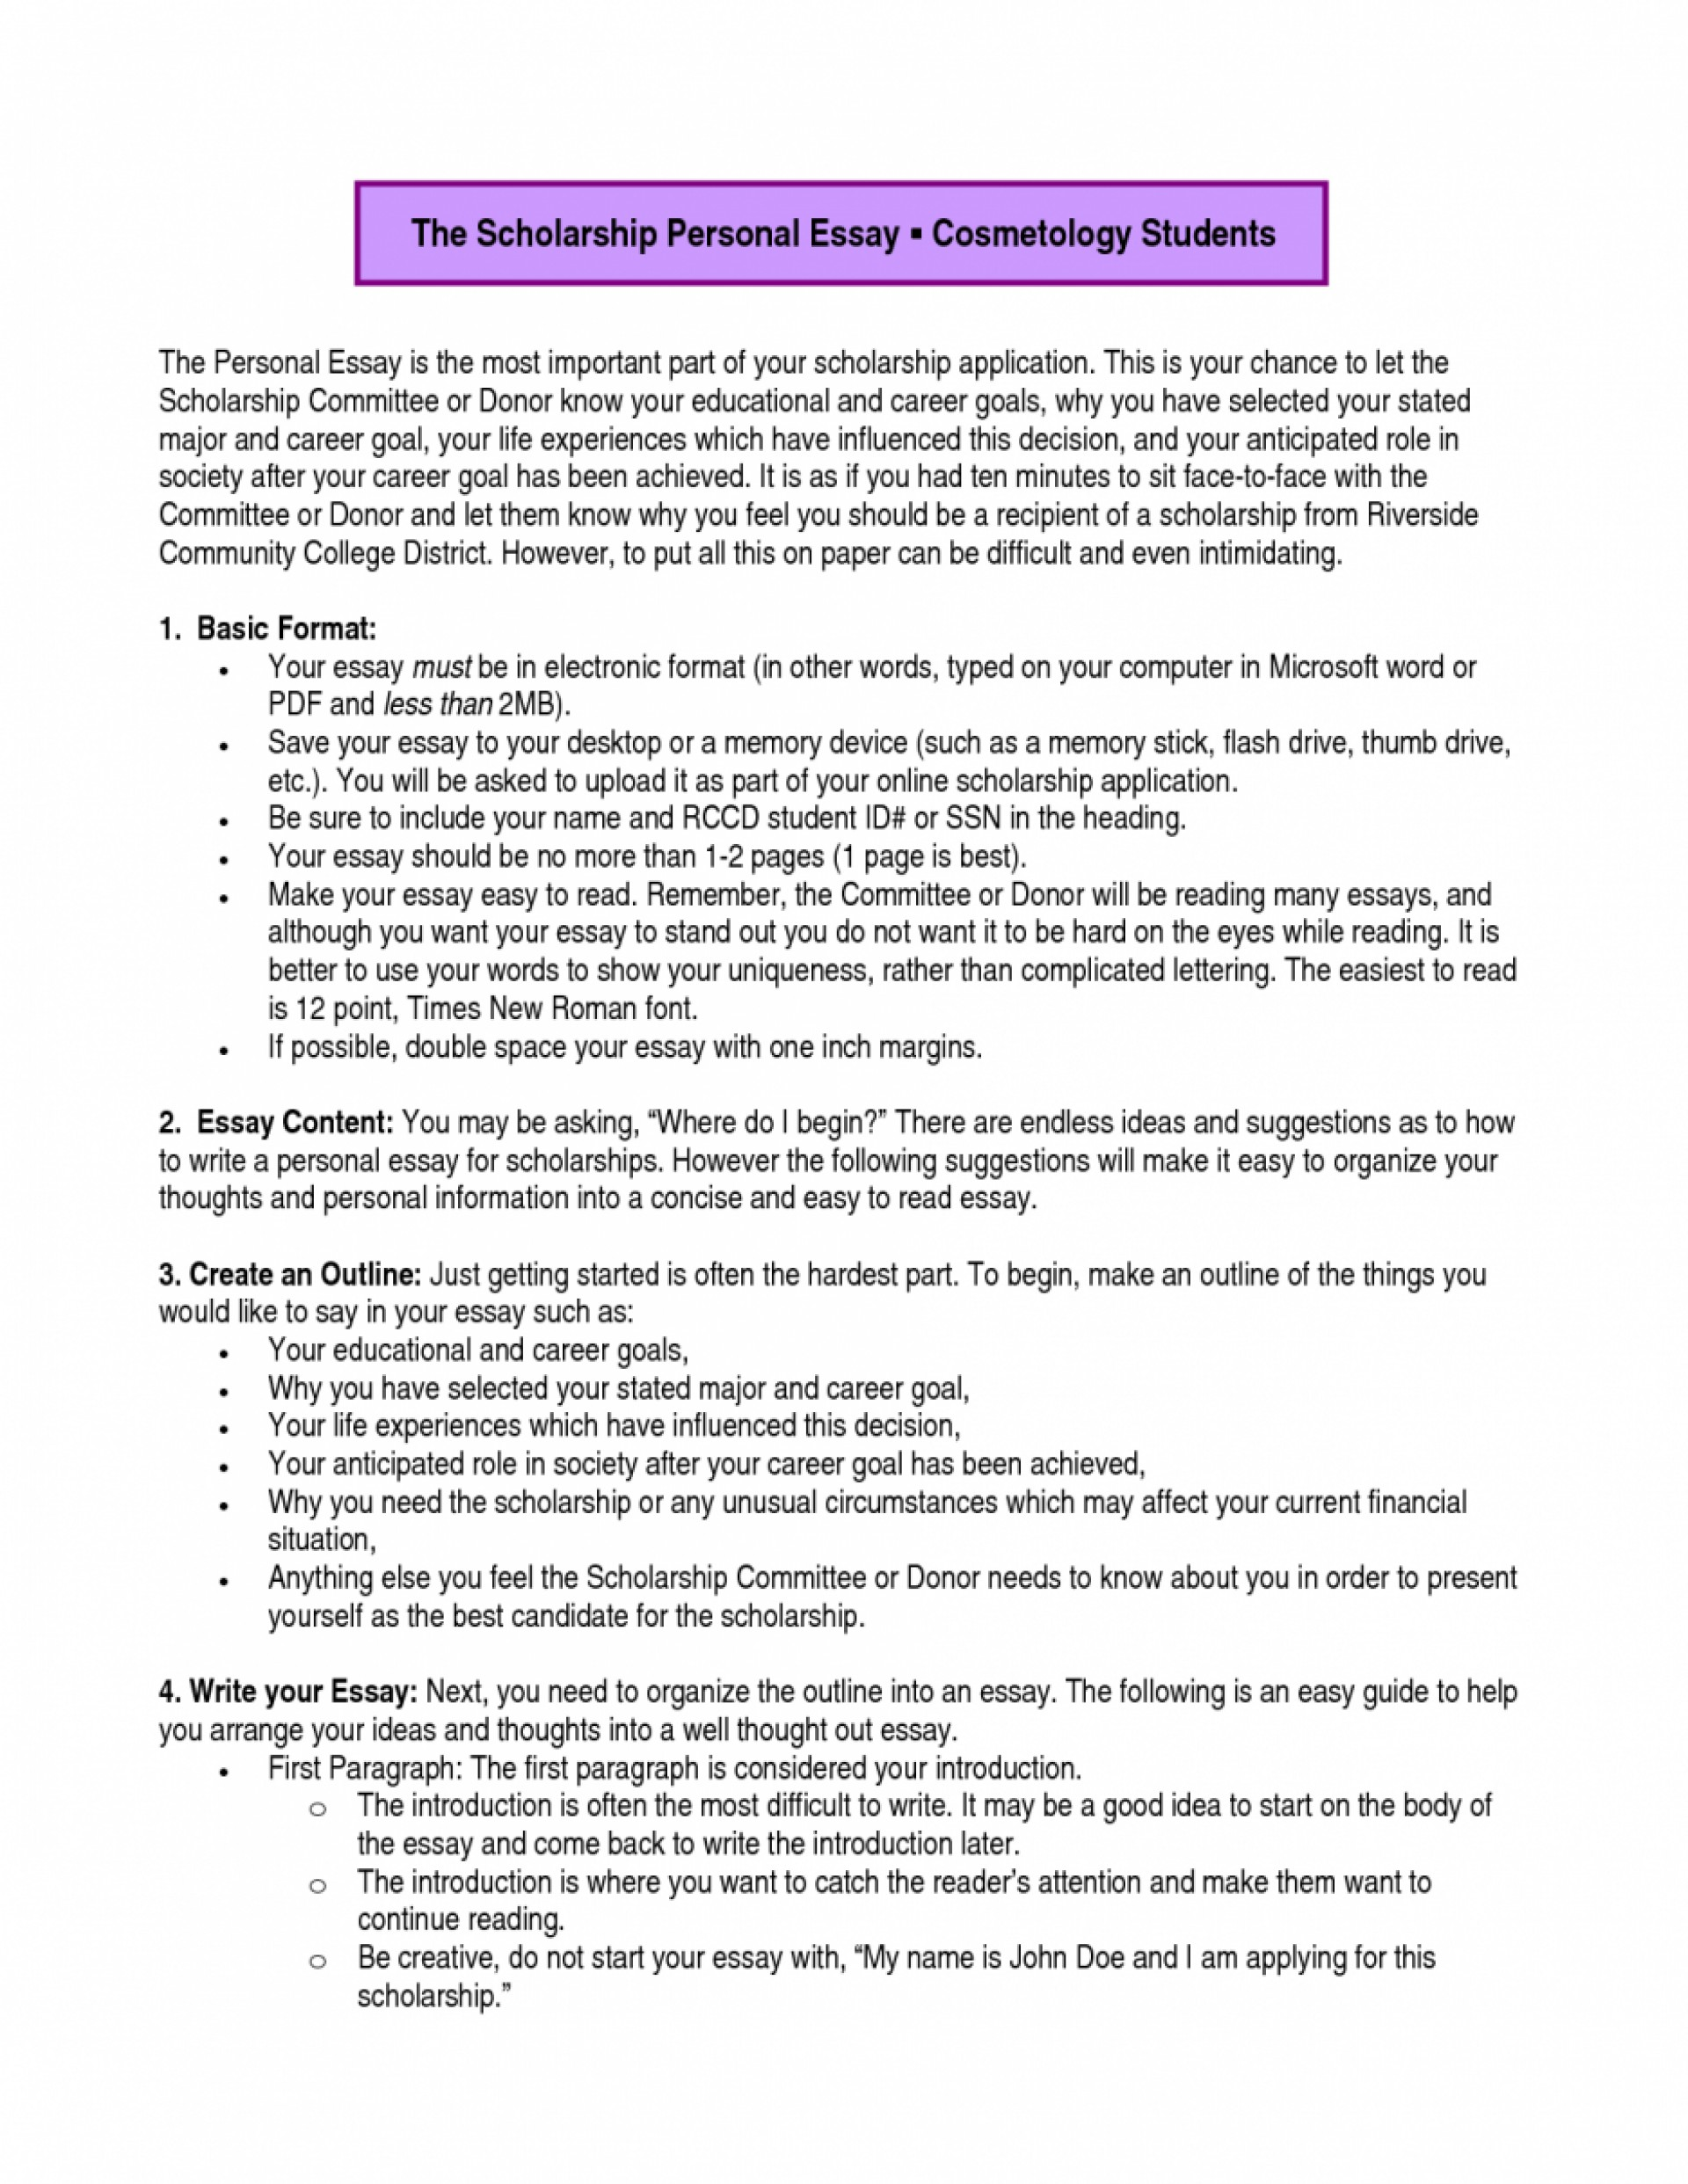 024 Personal Goals Essay Goal Essays Career And Educational Examples Academic Sample Paper Nursing Professional My Setting Smart Life Values About Future Achieving For College Amazing Graduate School Outline 1920